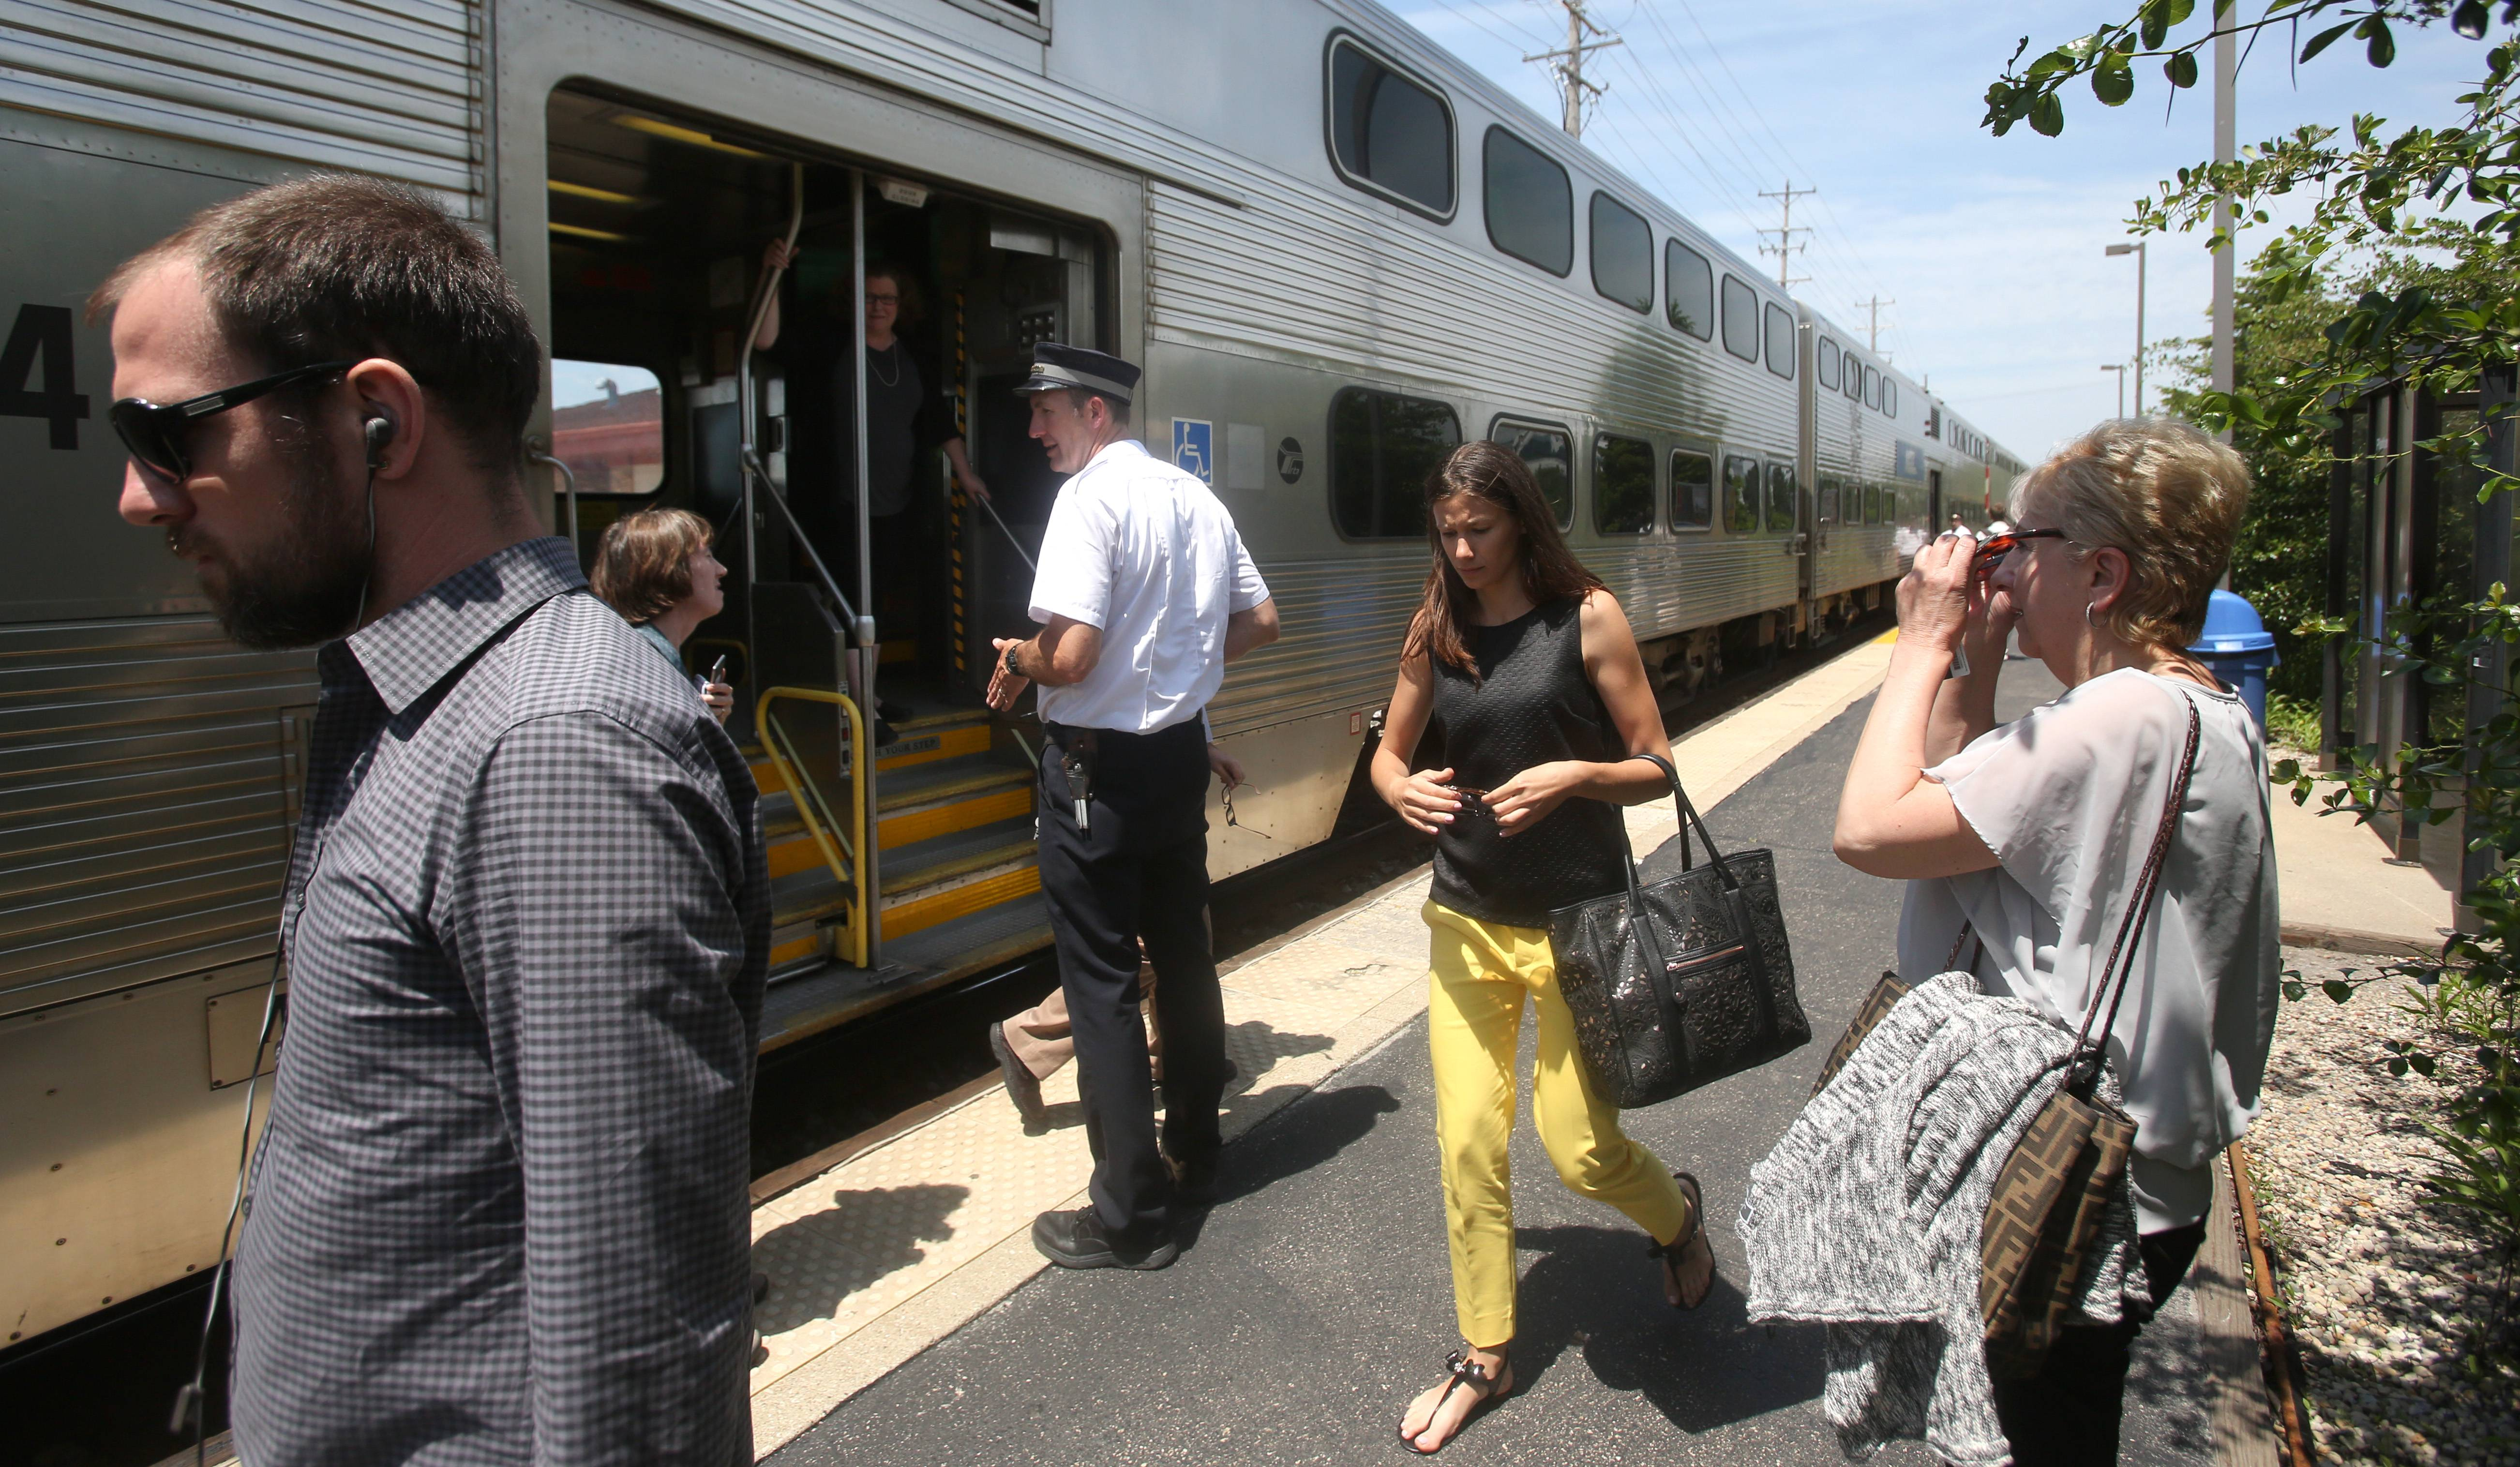 Metra is exploring a partnership with a ride-provider for passengers who need a lift to their final destination.